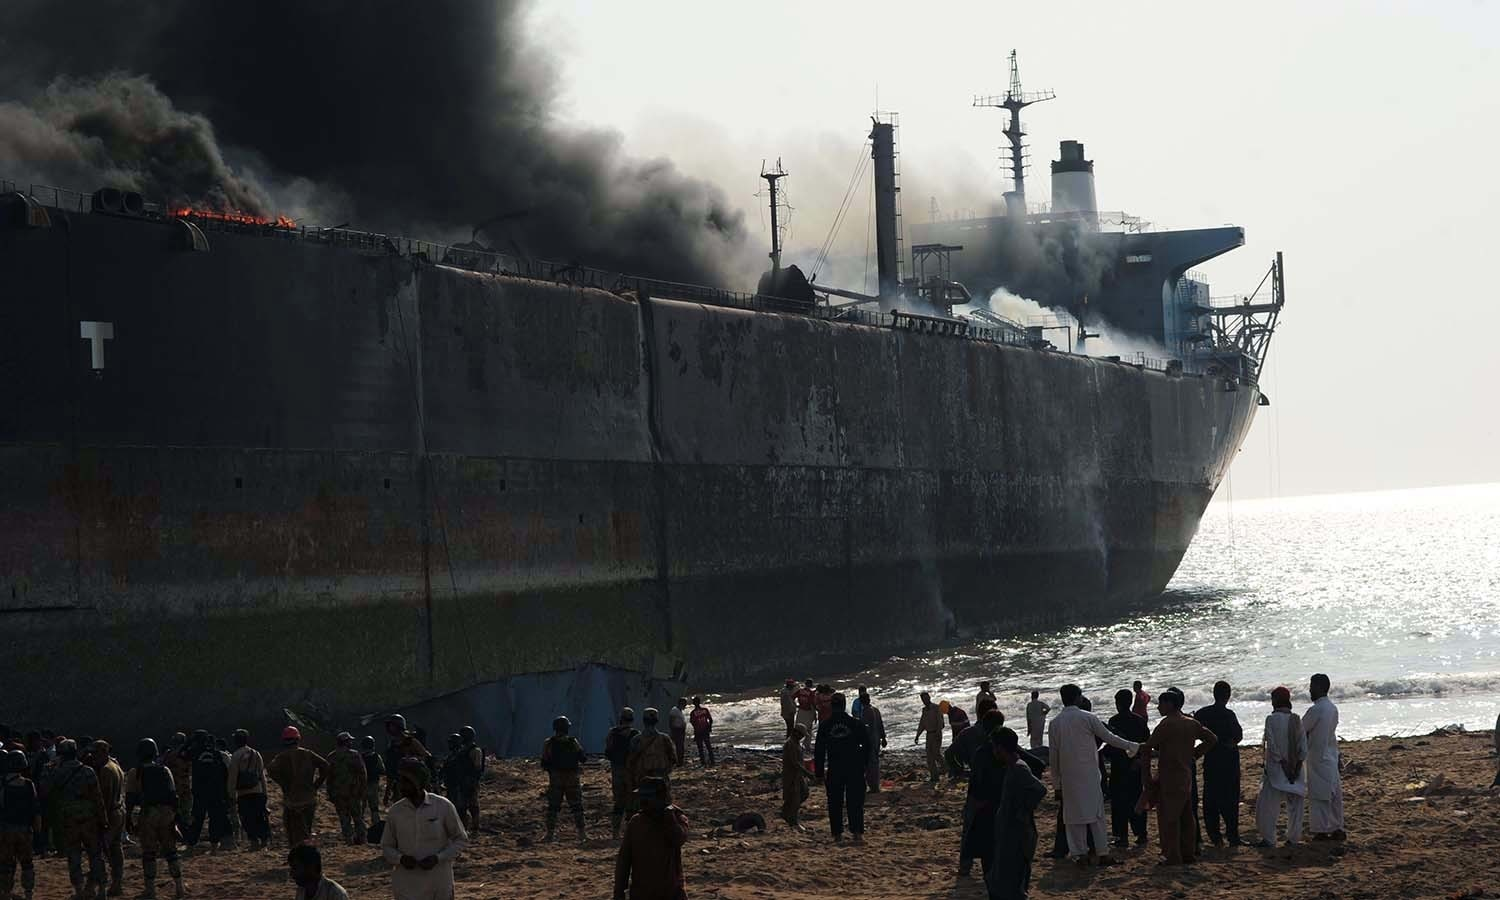 Bystanders gather around the wreckage of a burning ship. ─AFP